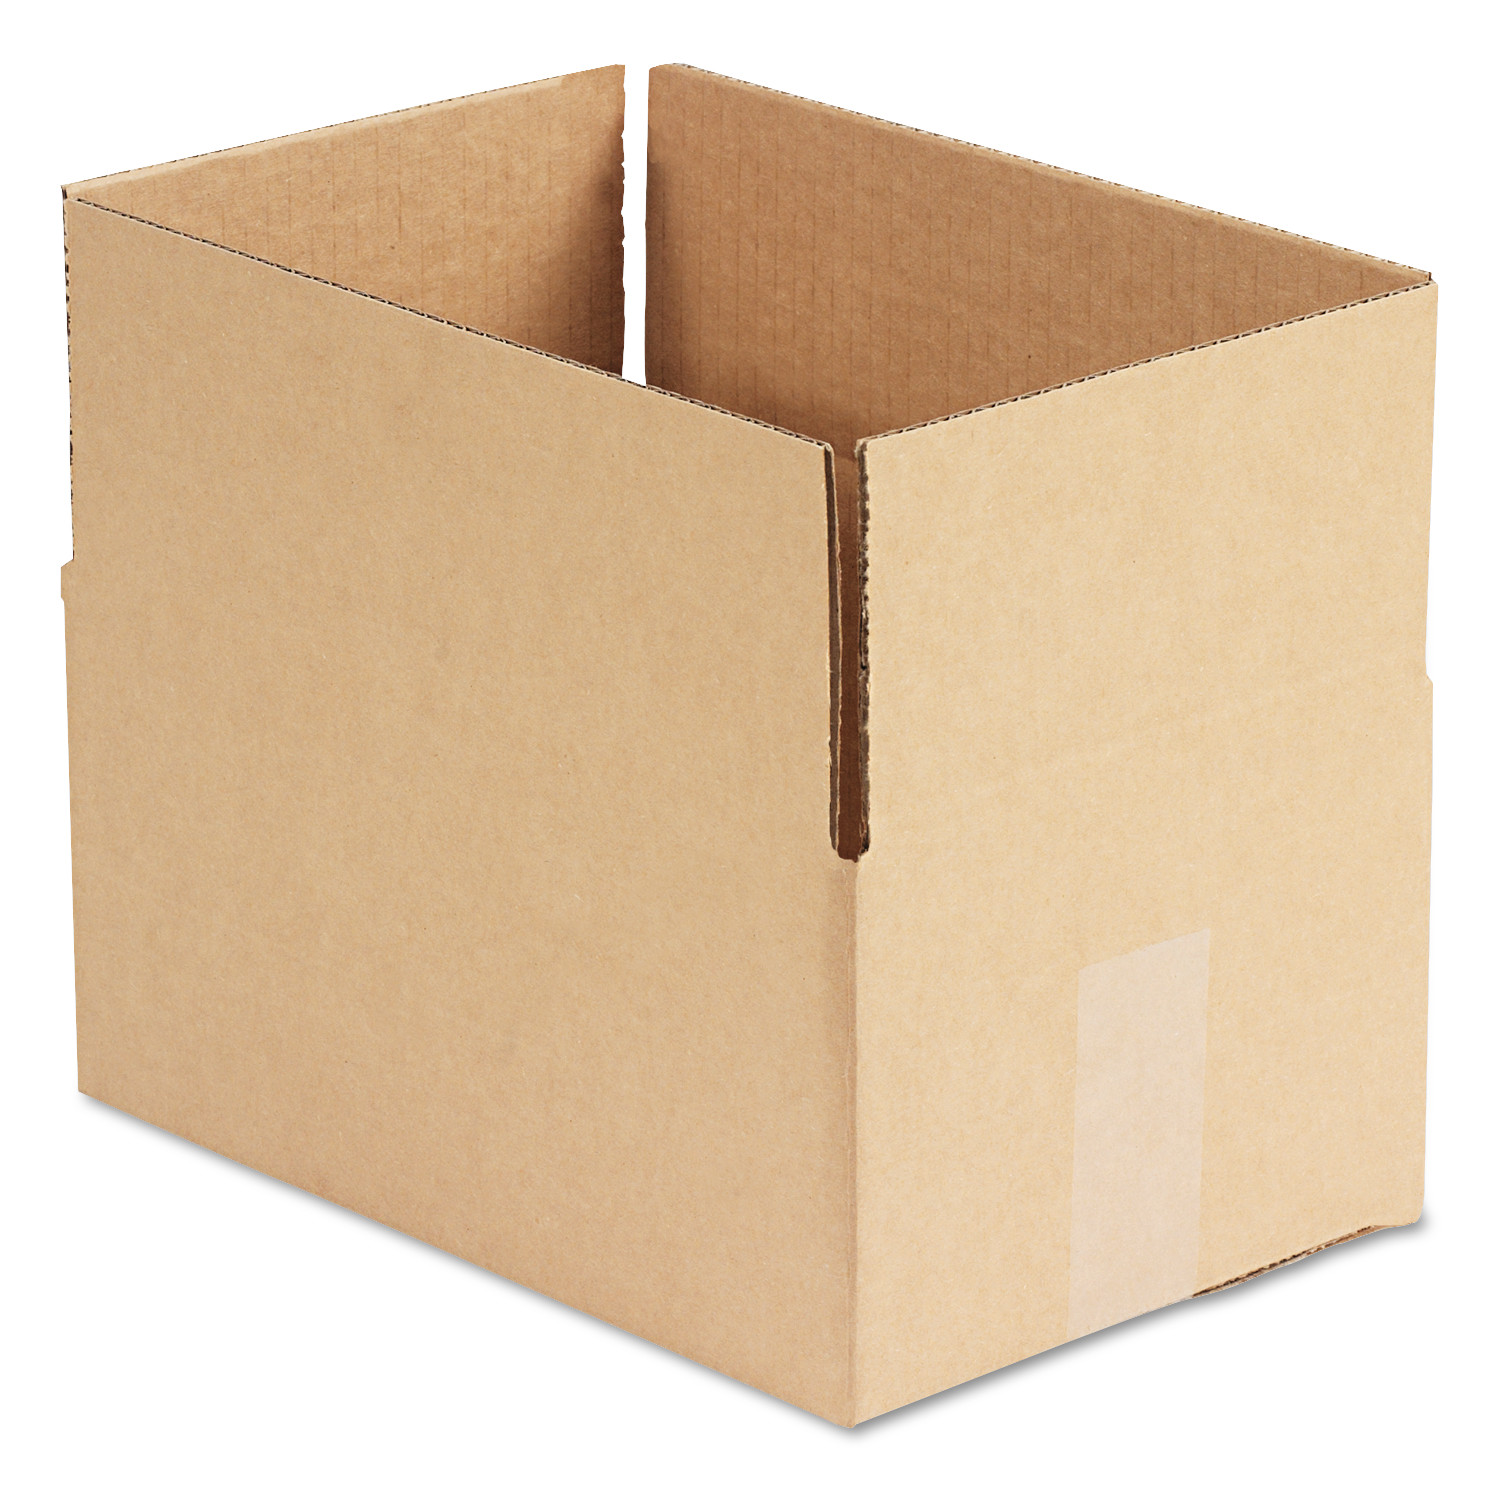 General Supply Brown Corrugated - Fixed-Depth Shipping Boxes, 12l x 8w x 6h, 25/Bundle -UFS1286